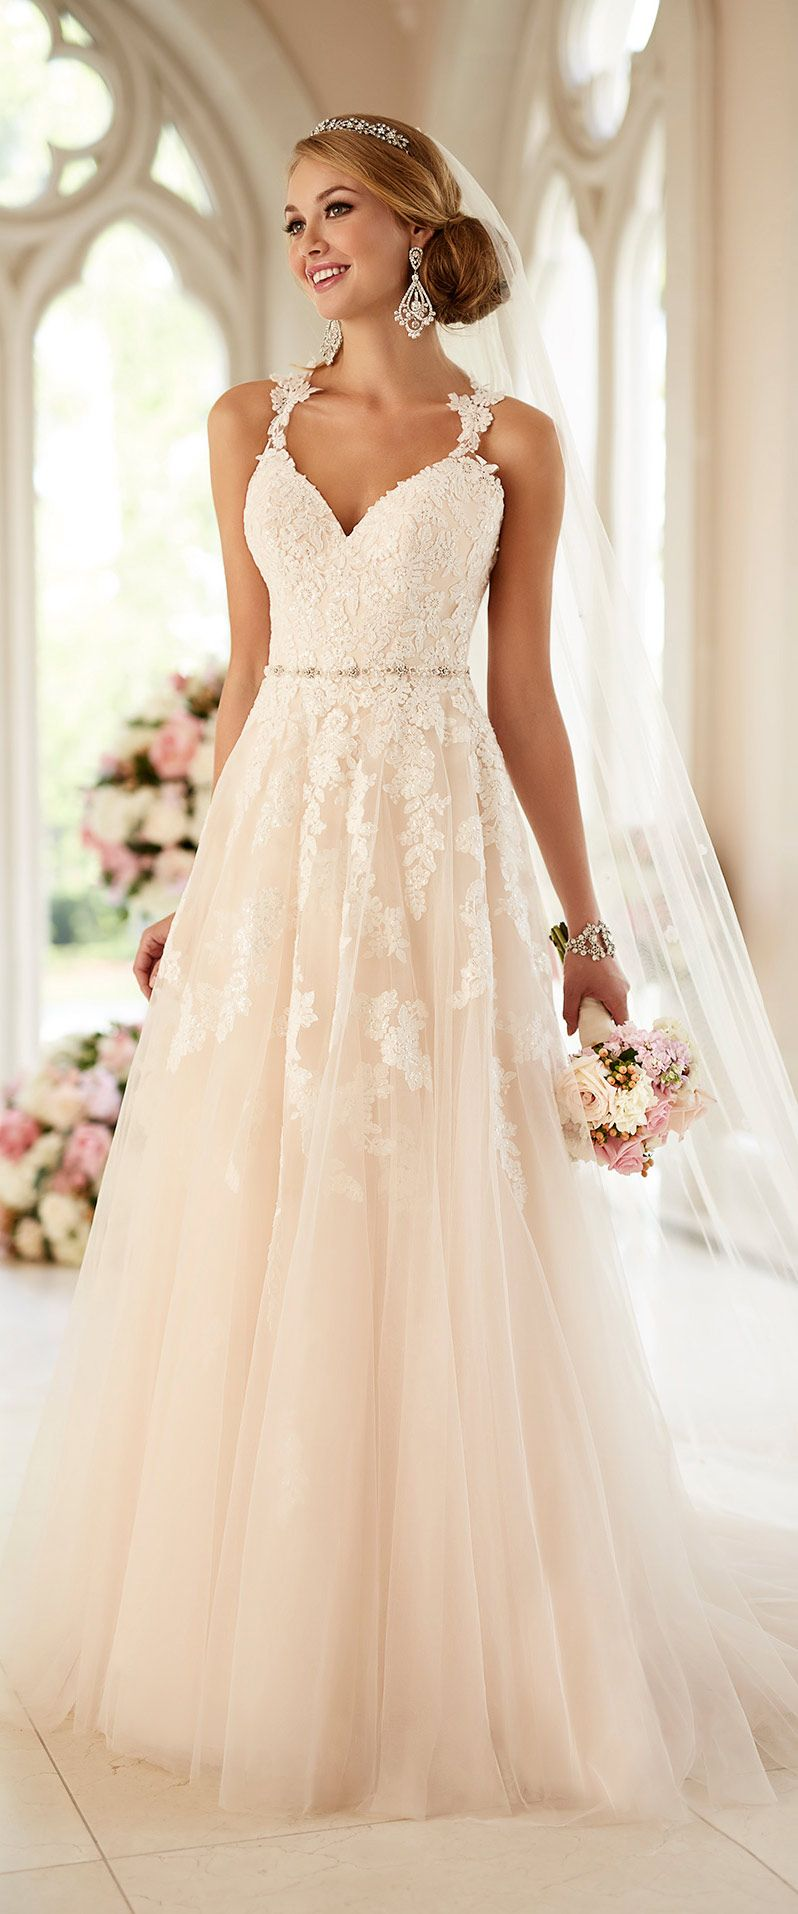 Wedding dress with straps  Stella York lace wedding dress with straps  The Big Day  Pinterest